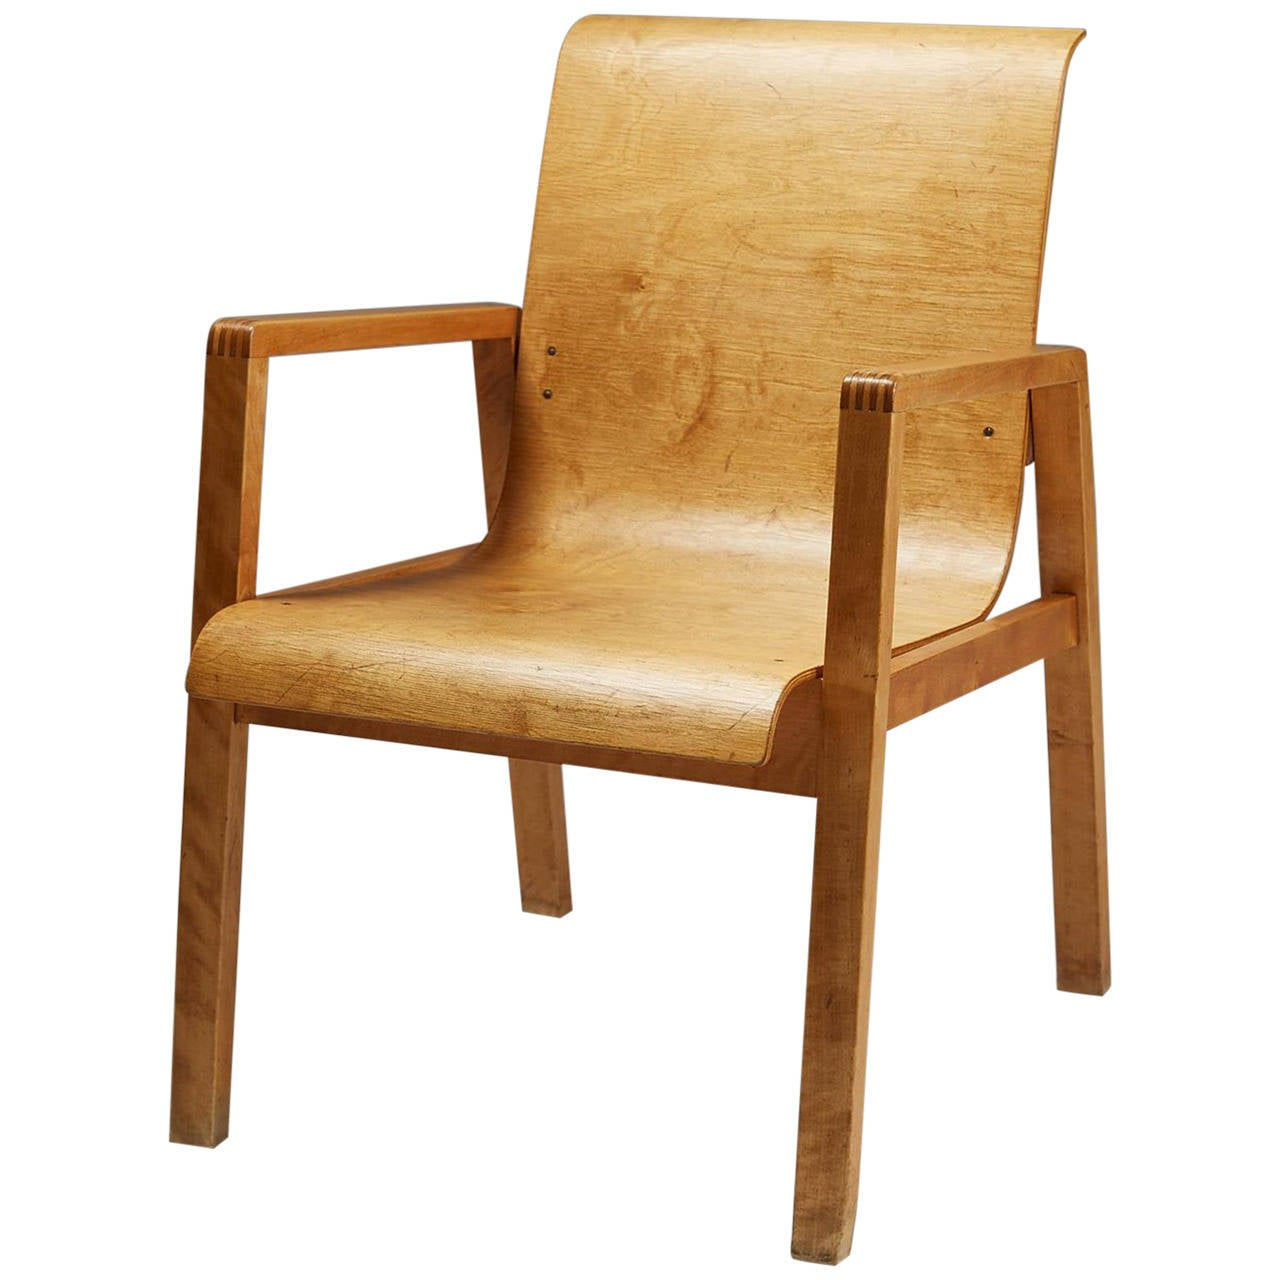 Chair designed by alvar aalto for artek finland 1950s at for Alvar aalto chaise